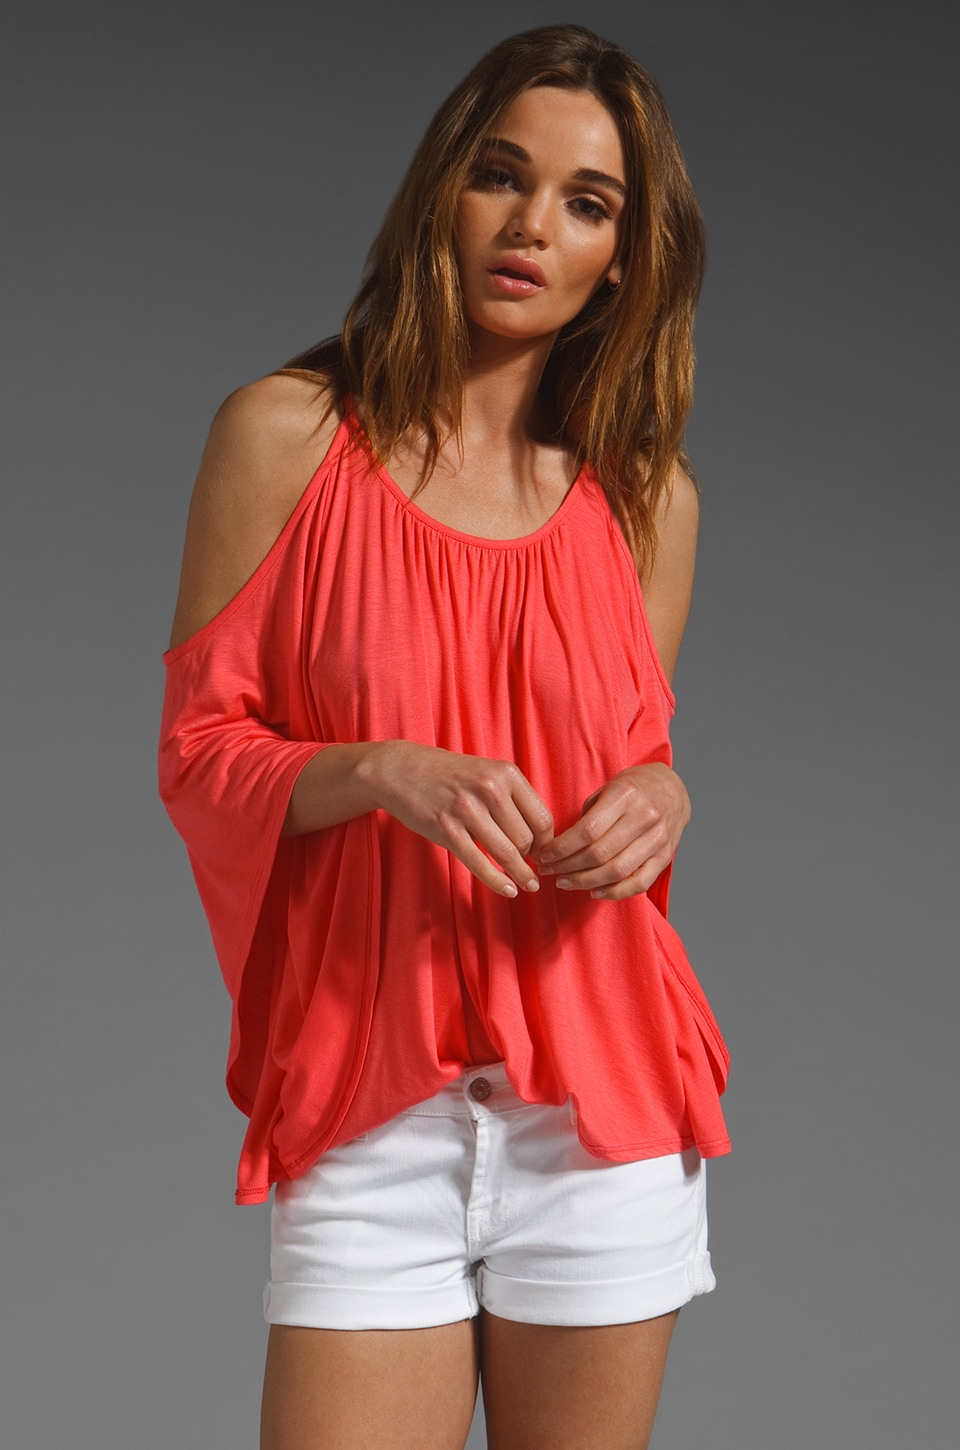 James & Joy Nick Top in Coral